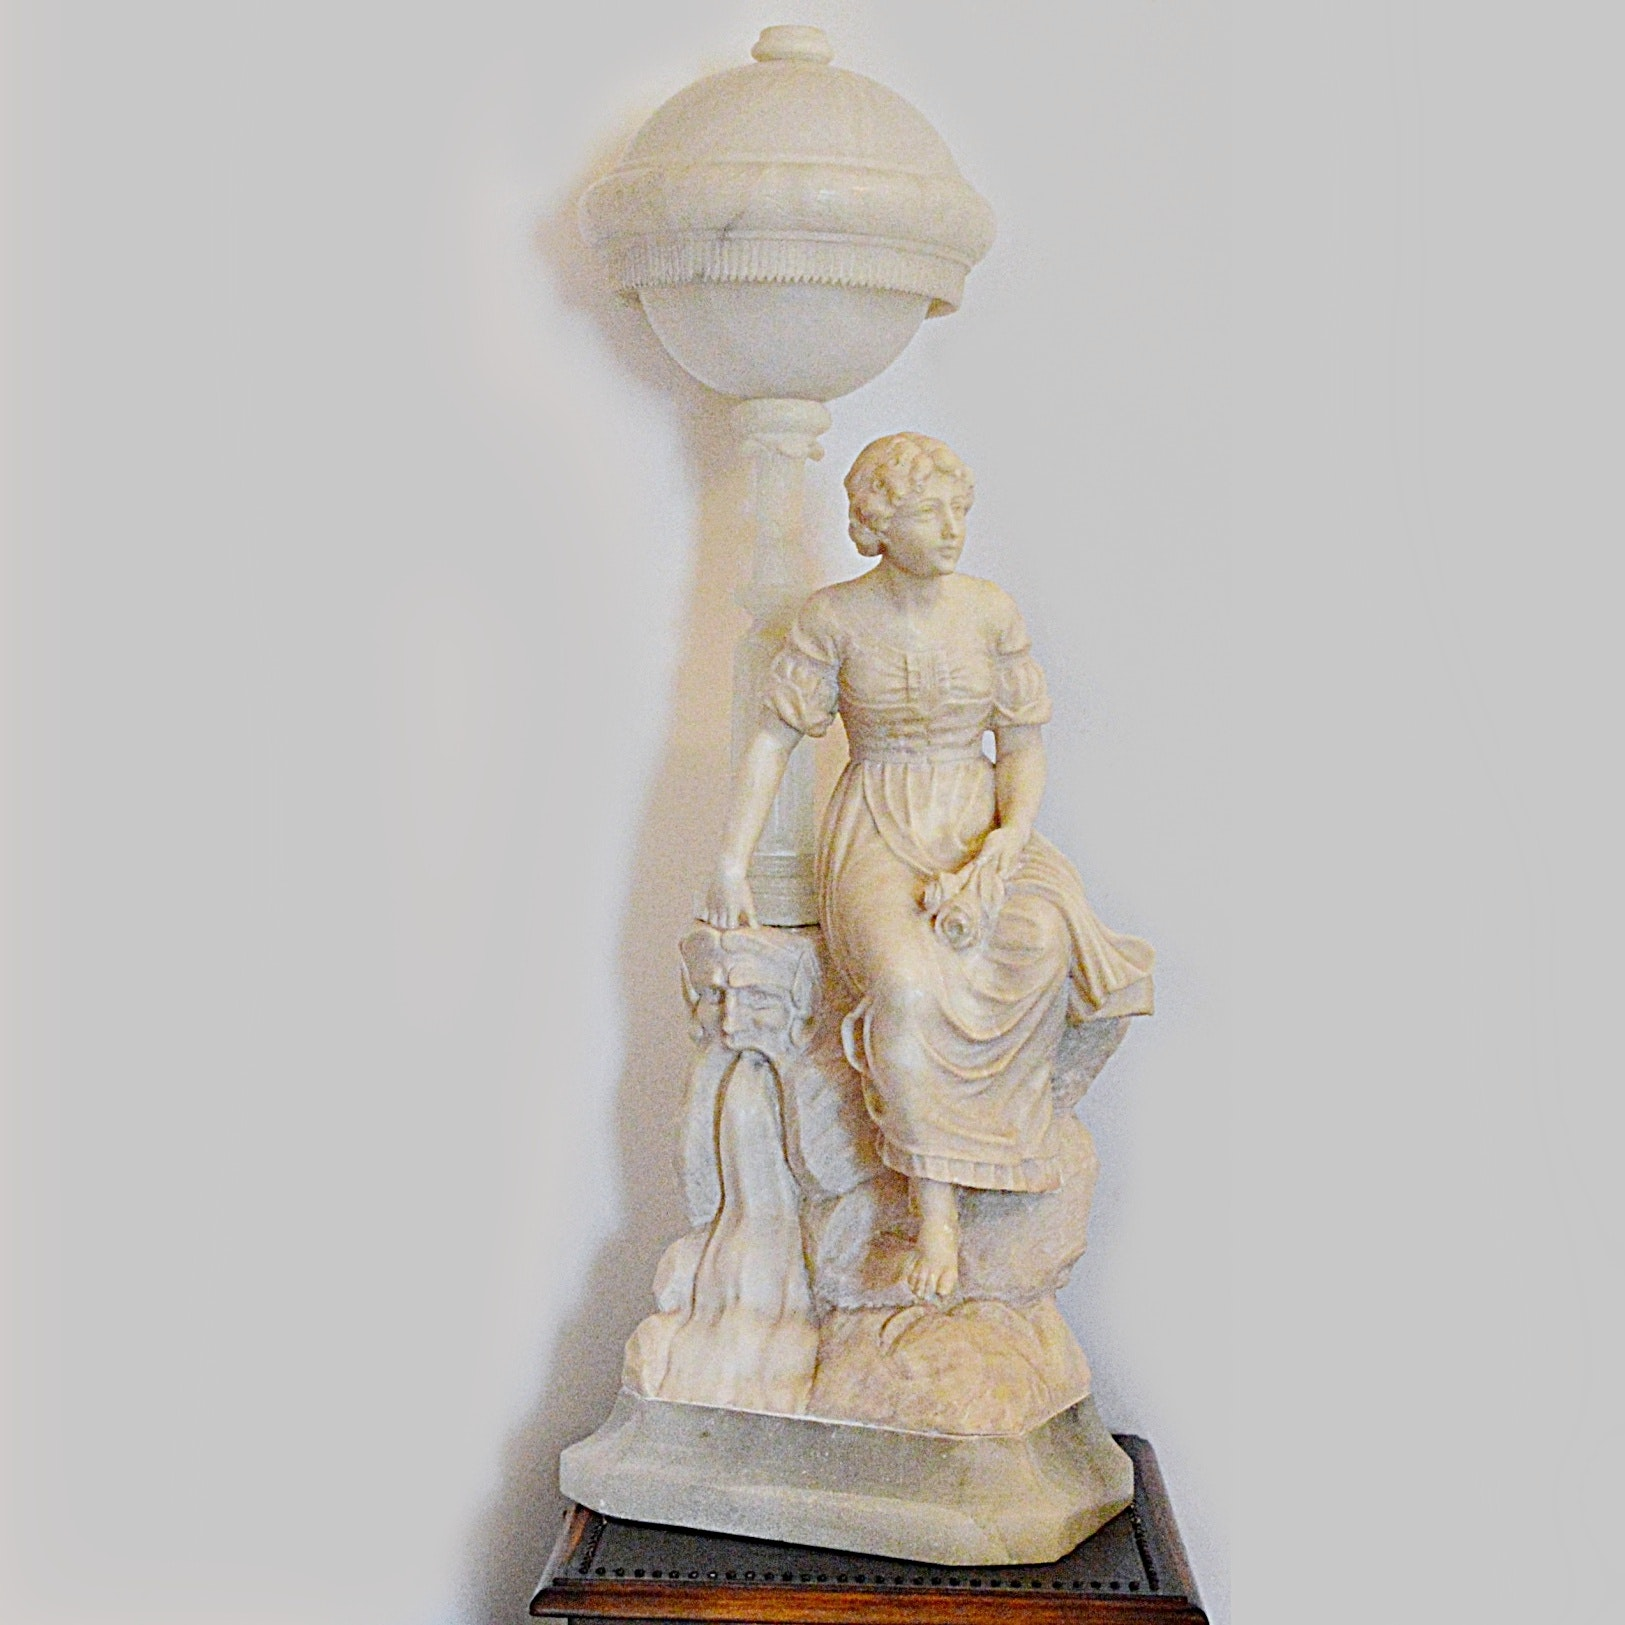 Exceptional Antique Carved Alabaster, Marble + Onyx Statuary Lamp